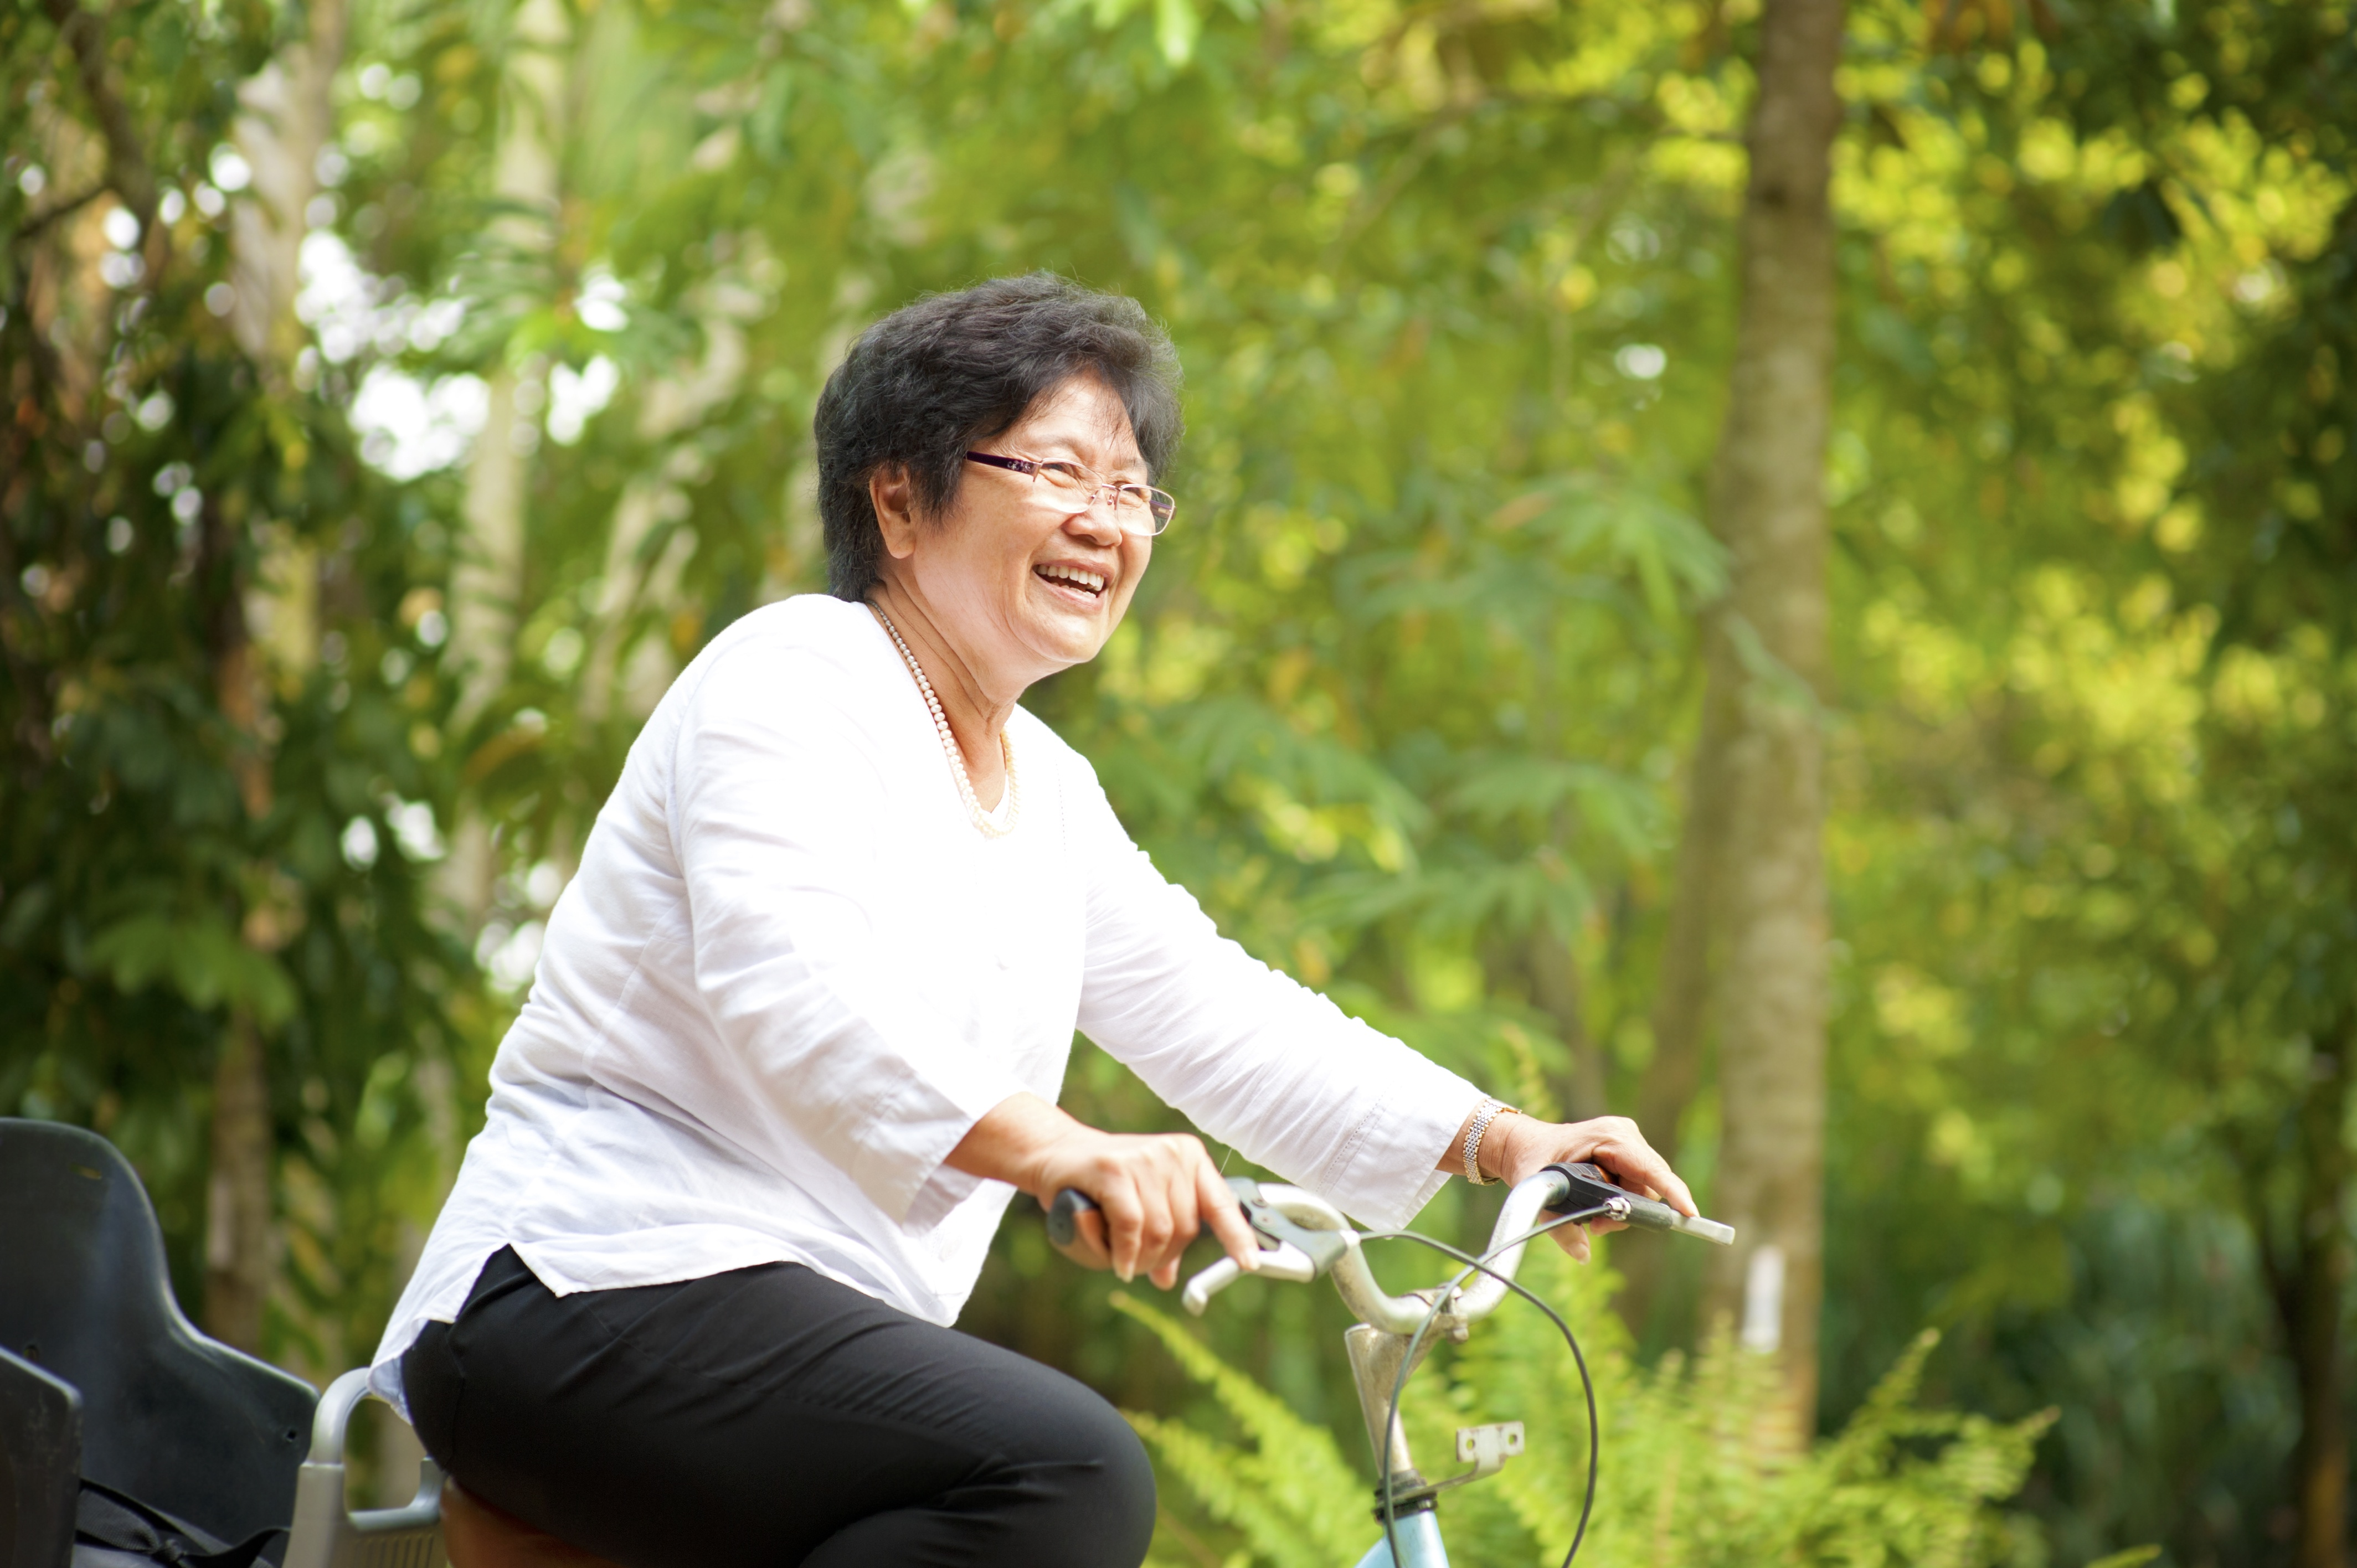 60s_senior_Asian_woman_riding_on_bicycle_outdoor_with_great_fun.jpg